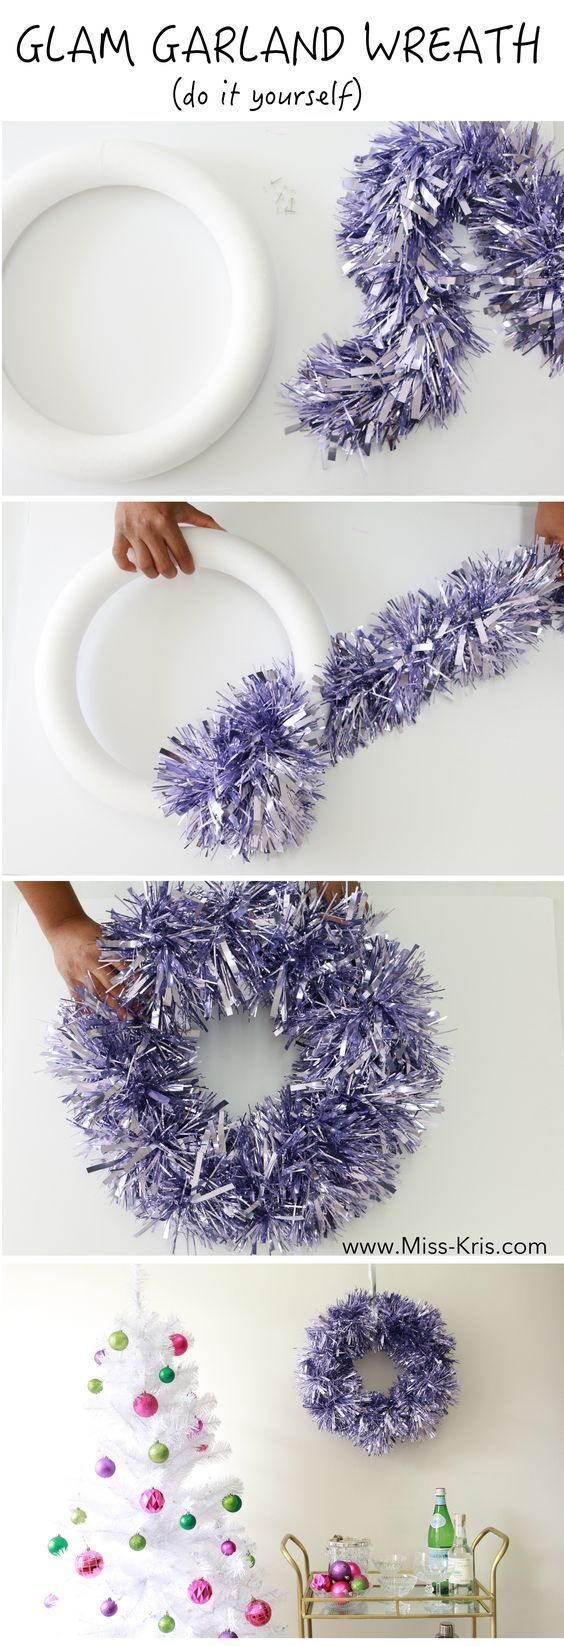 Easy DIY Christmas Wreath Ideas - How to Make a Christmas Wreath